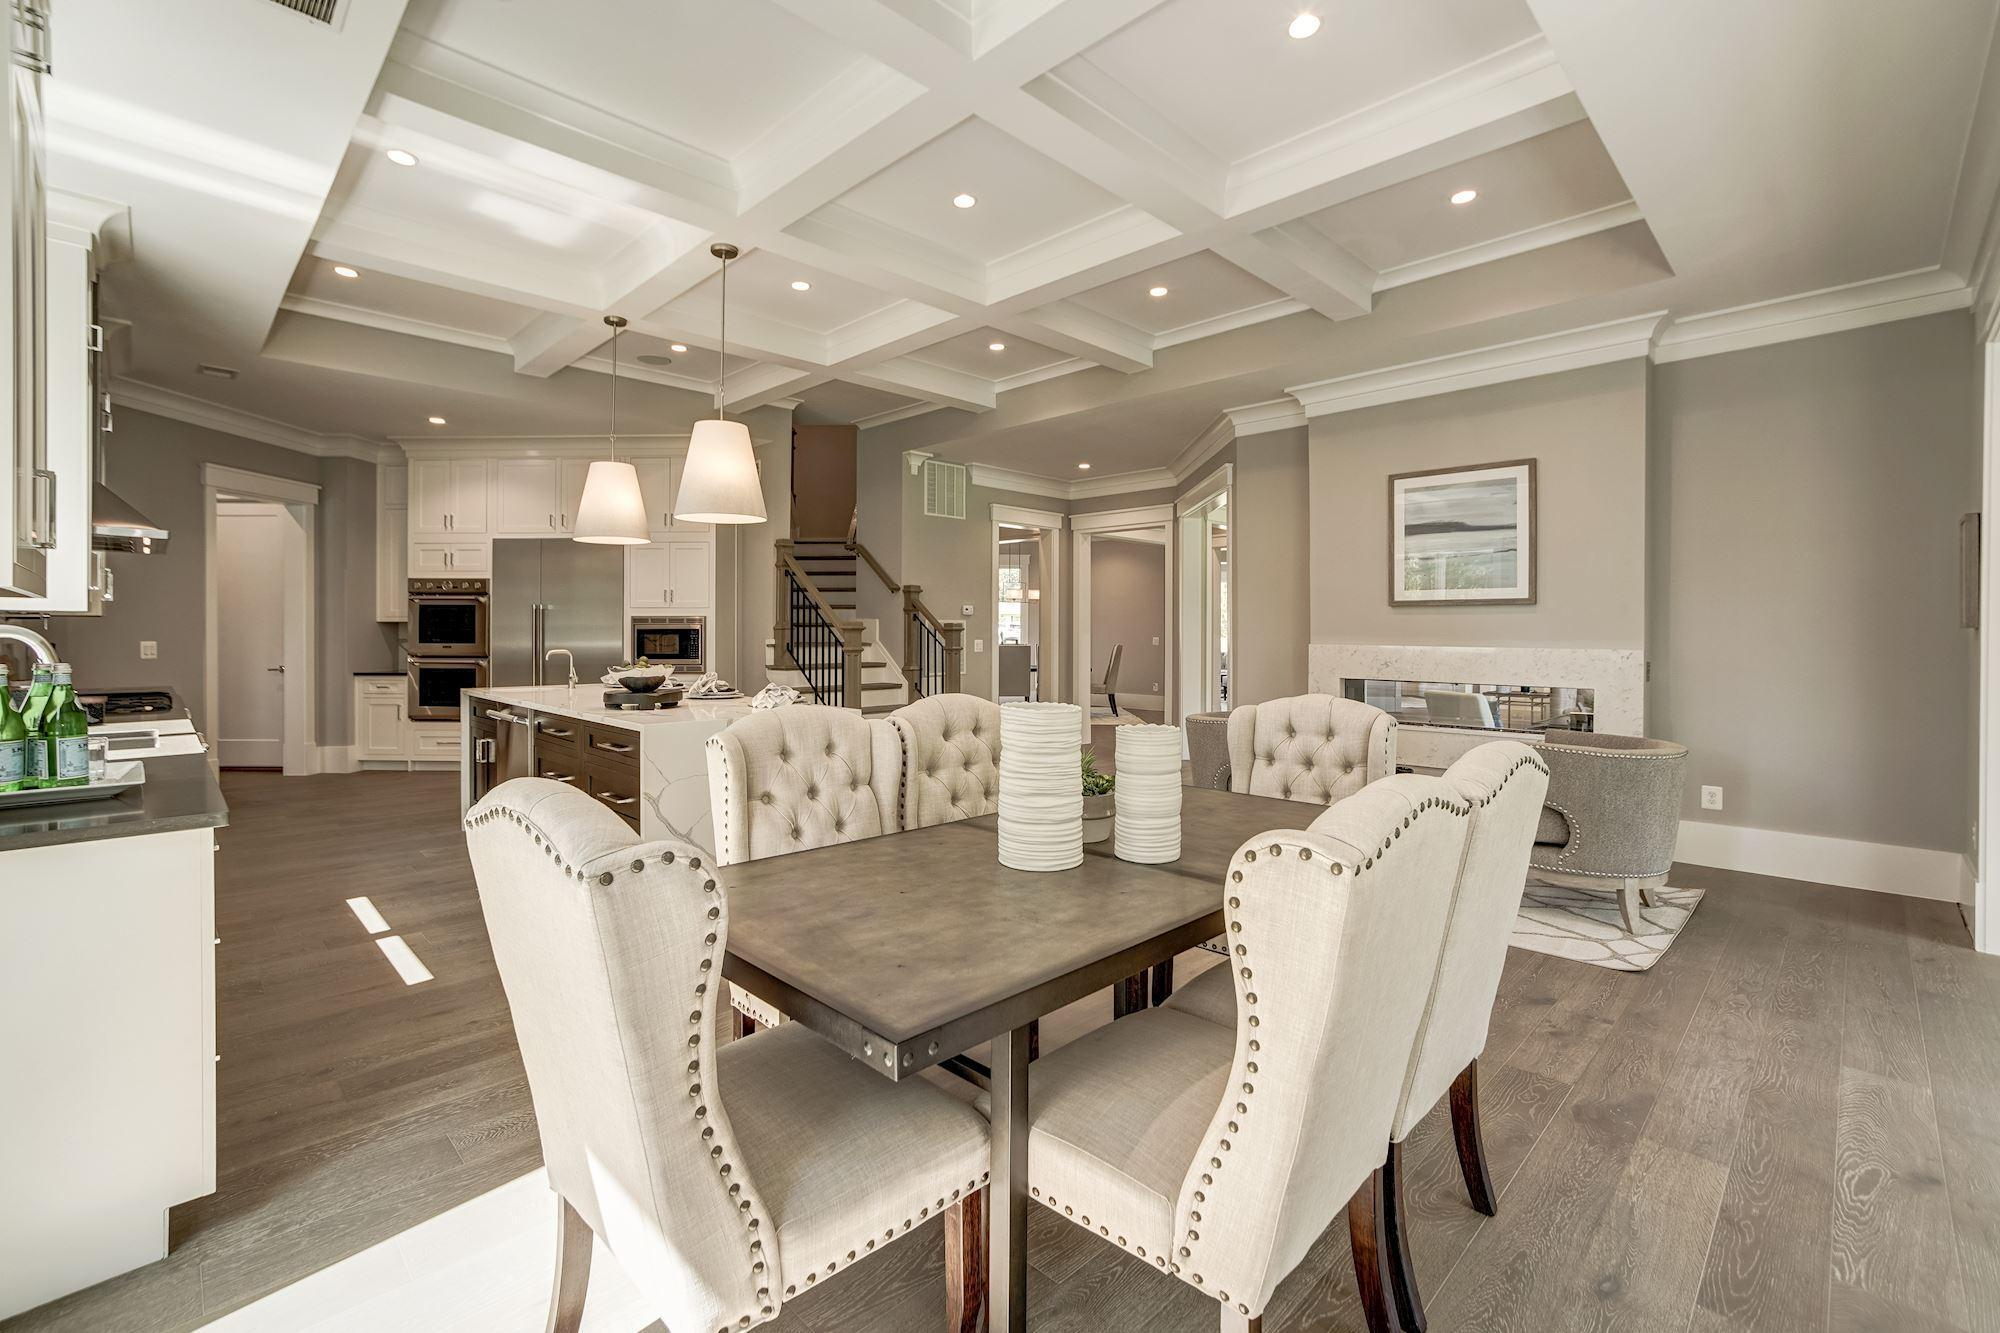 New Homes For Sale In Potomac